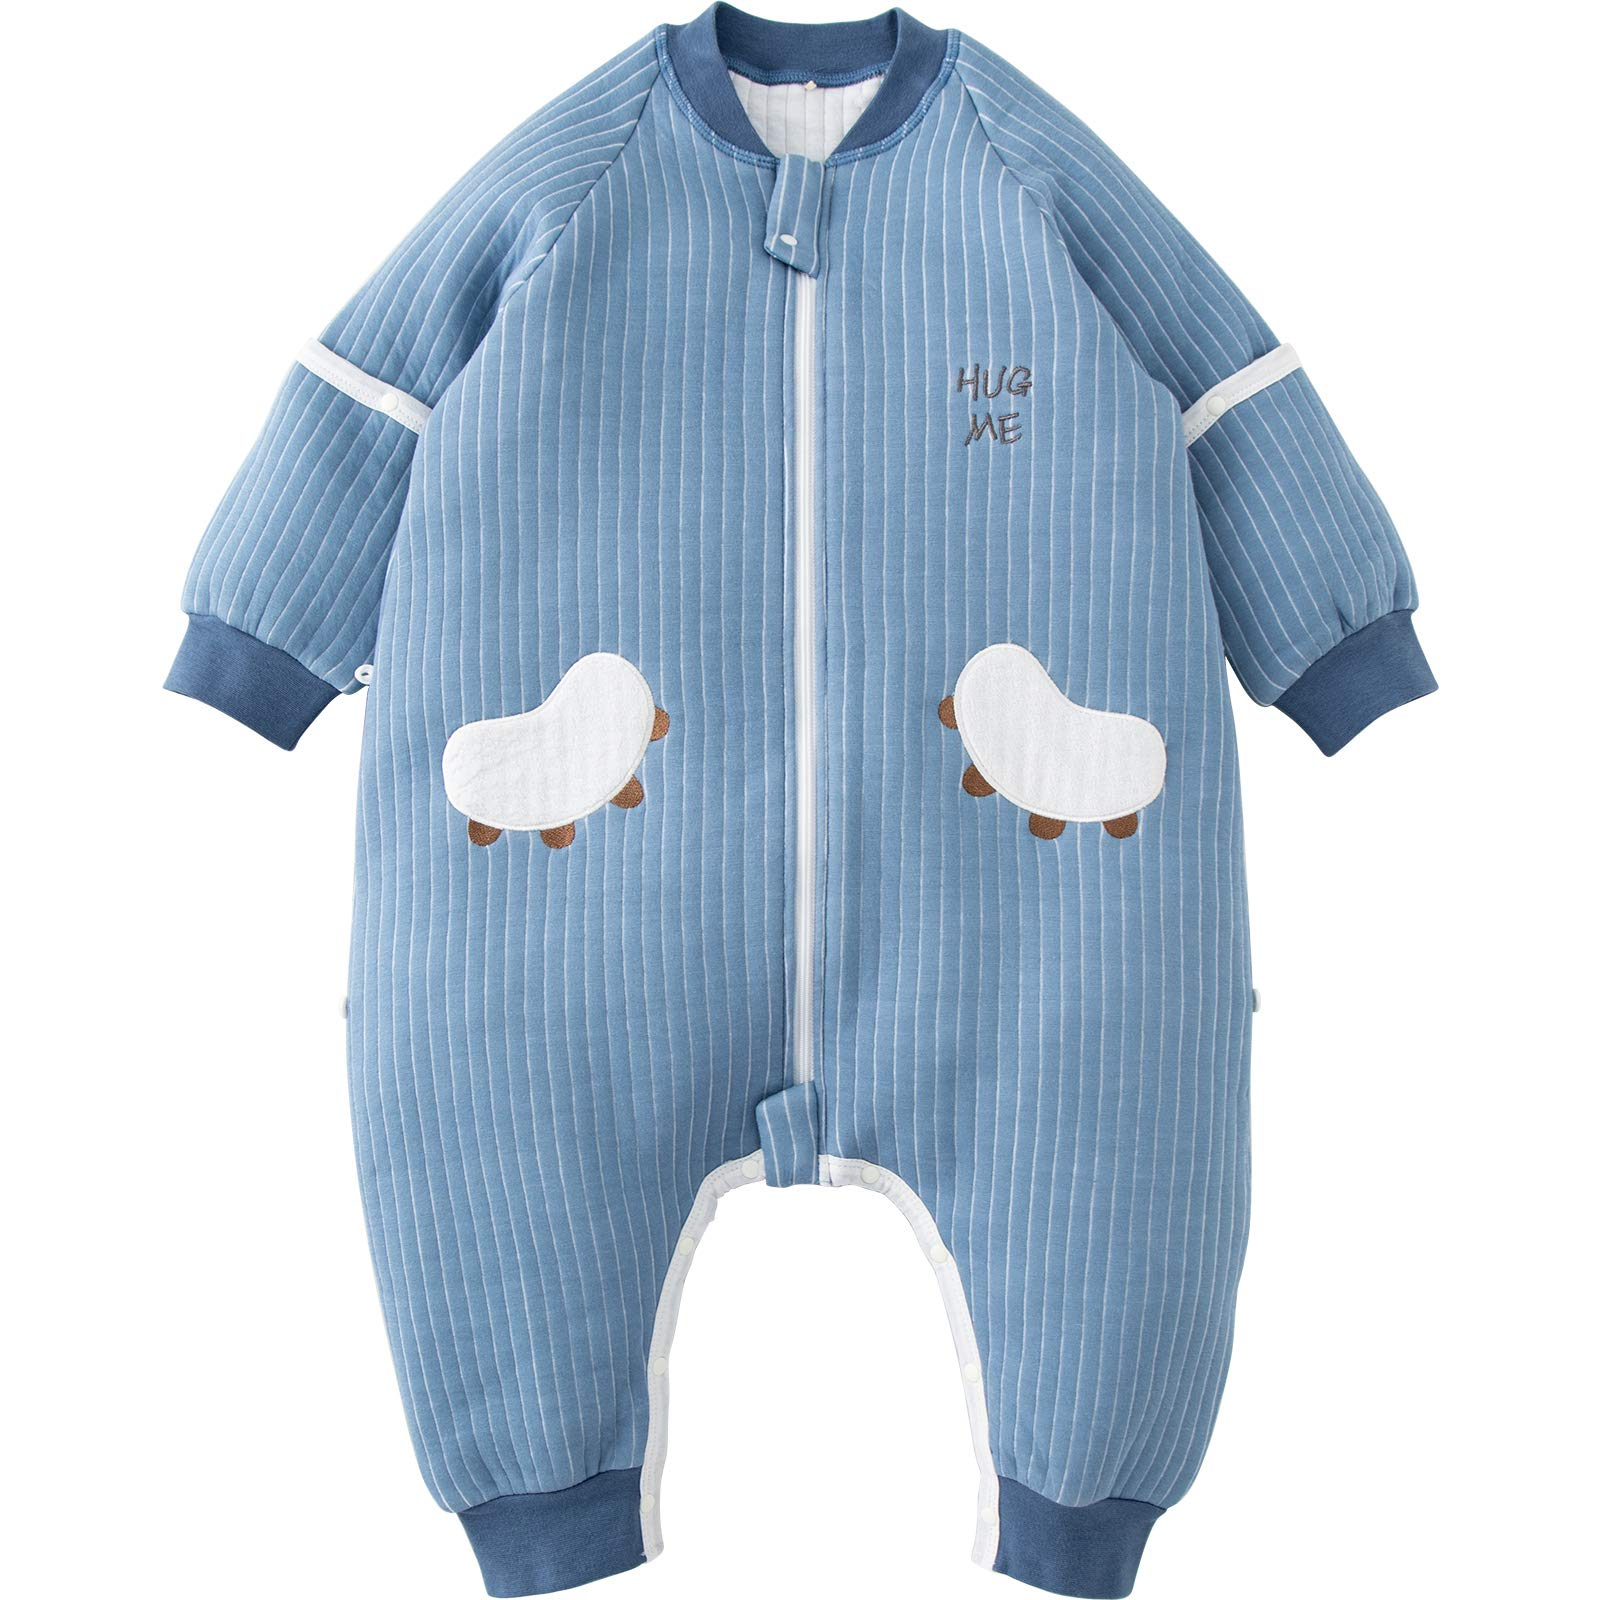 DuoMiaoMiao Baby Sleeping Bag with Legs, Sleepsack with Feet, 100% Cotton Baby Wearable Blankets with Removable Half Sleeves, Length 85 cm, for Baby Toddler 1.5-2 Years, 1.0 TOG Sleeping Bags, Blue